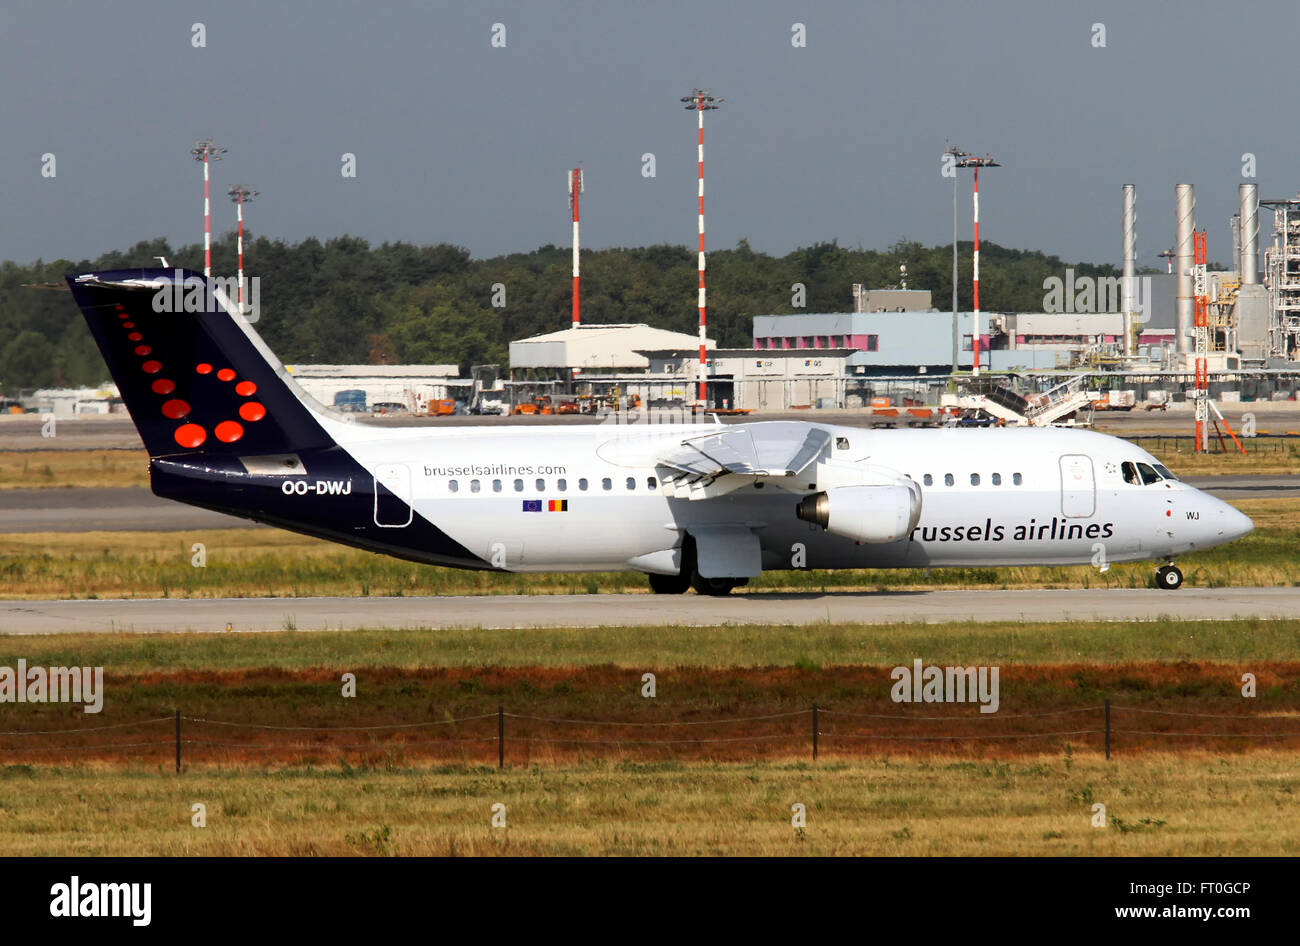 OO-DWJ, Brussels Airlines, British Aerospace BAE 146-300 Avro RJ100 - Stock Image